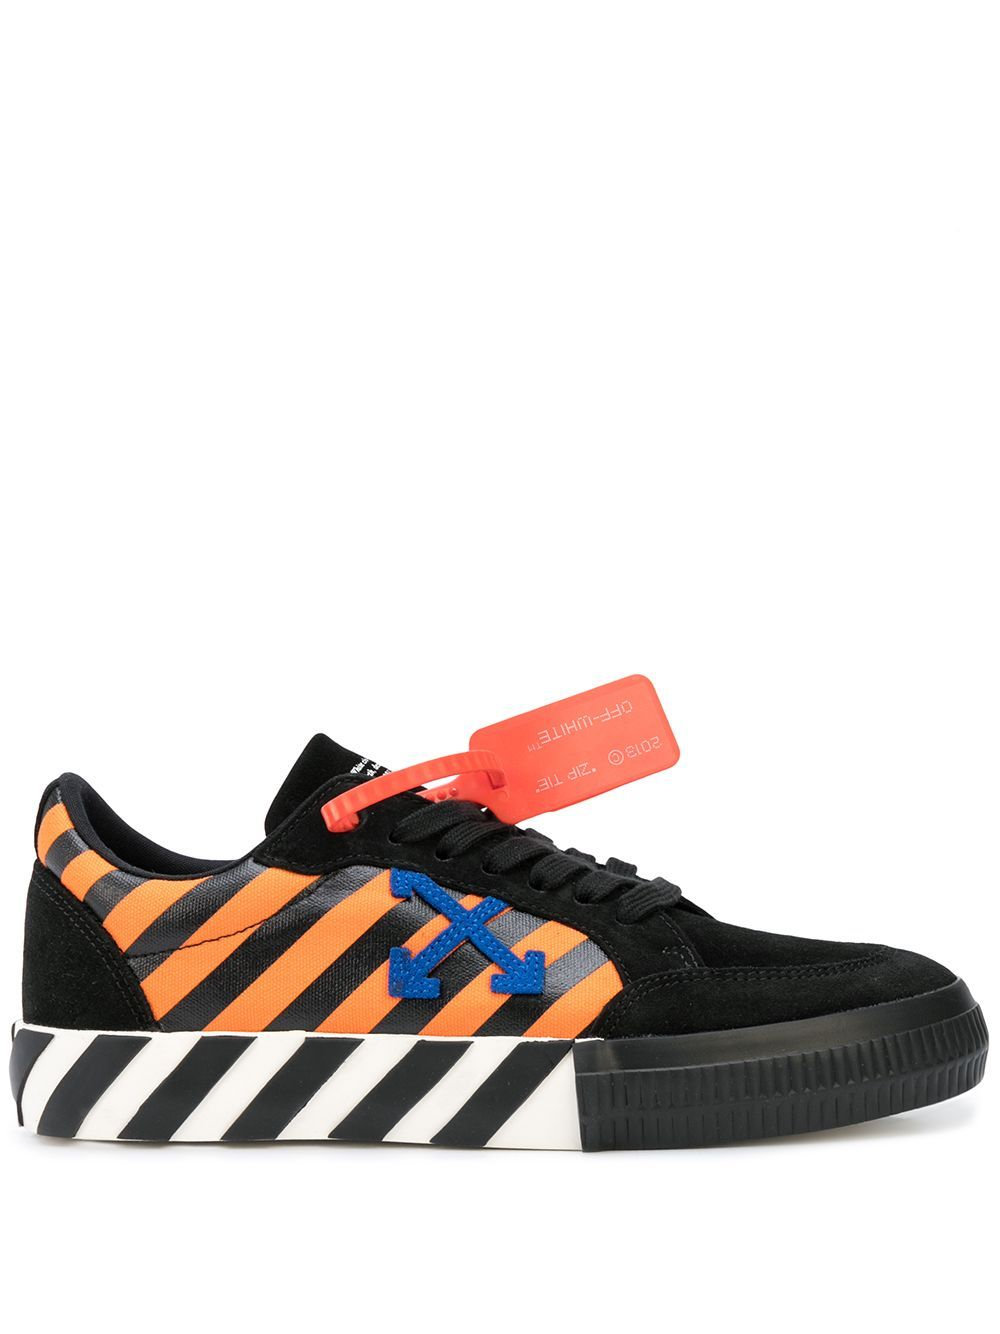 OFF-WHITE diagonal low vulcanized orange/blue